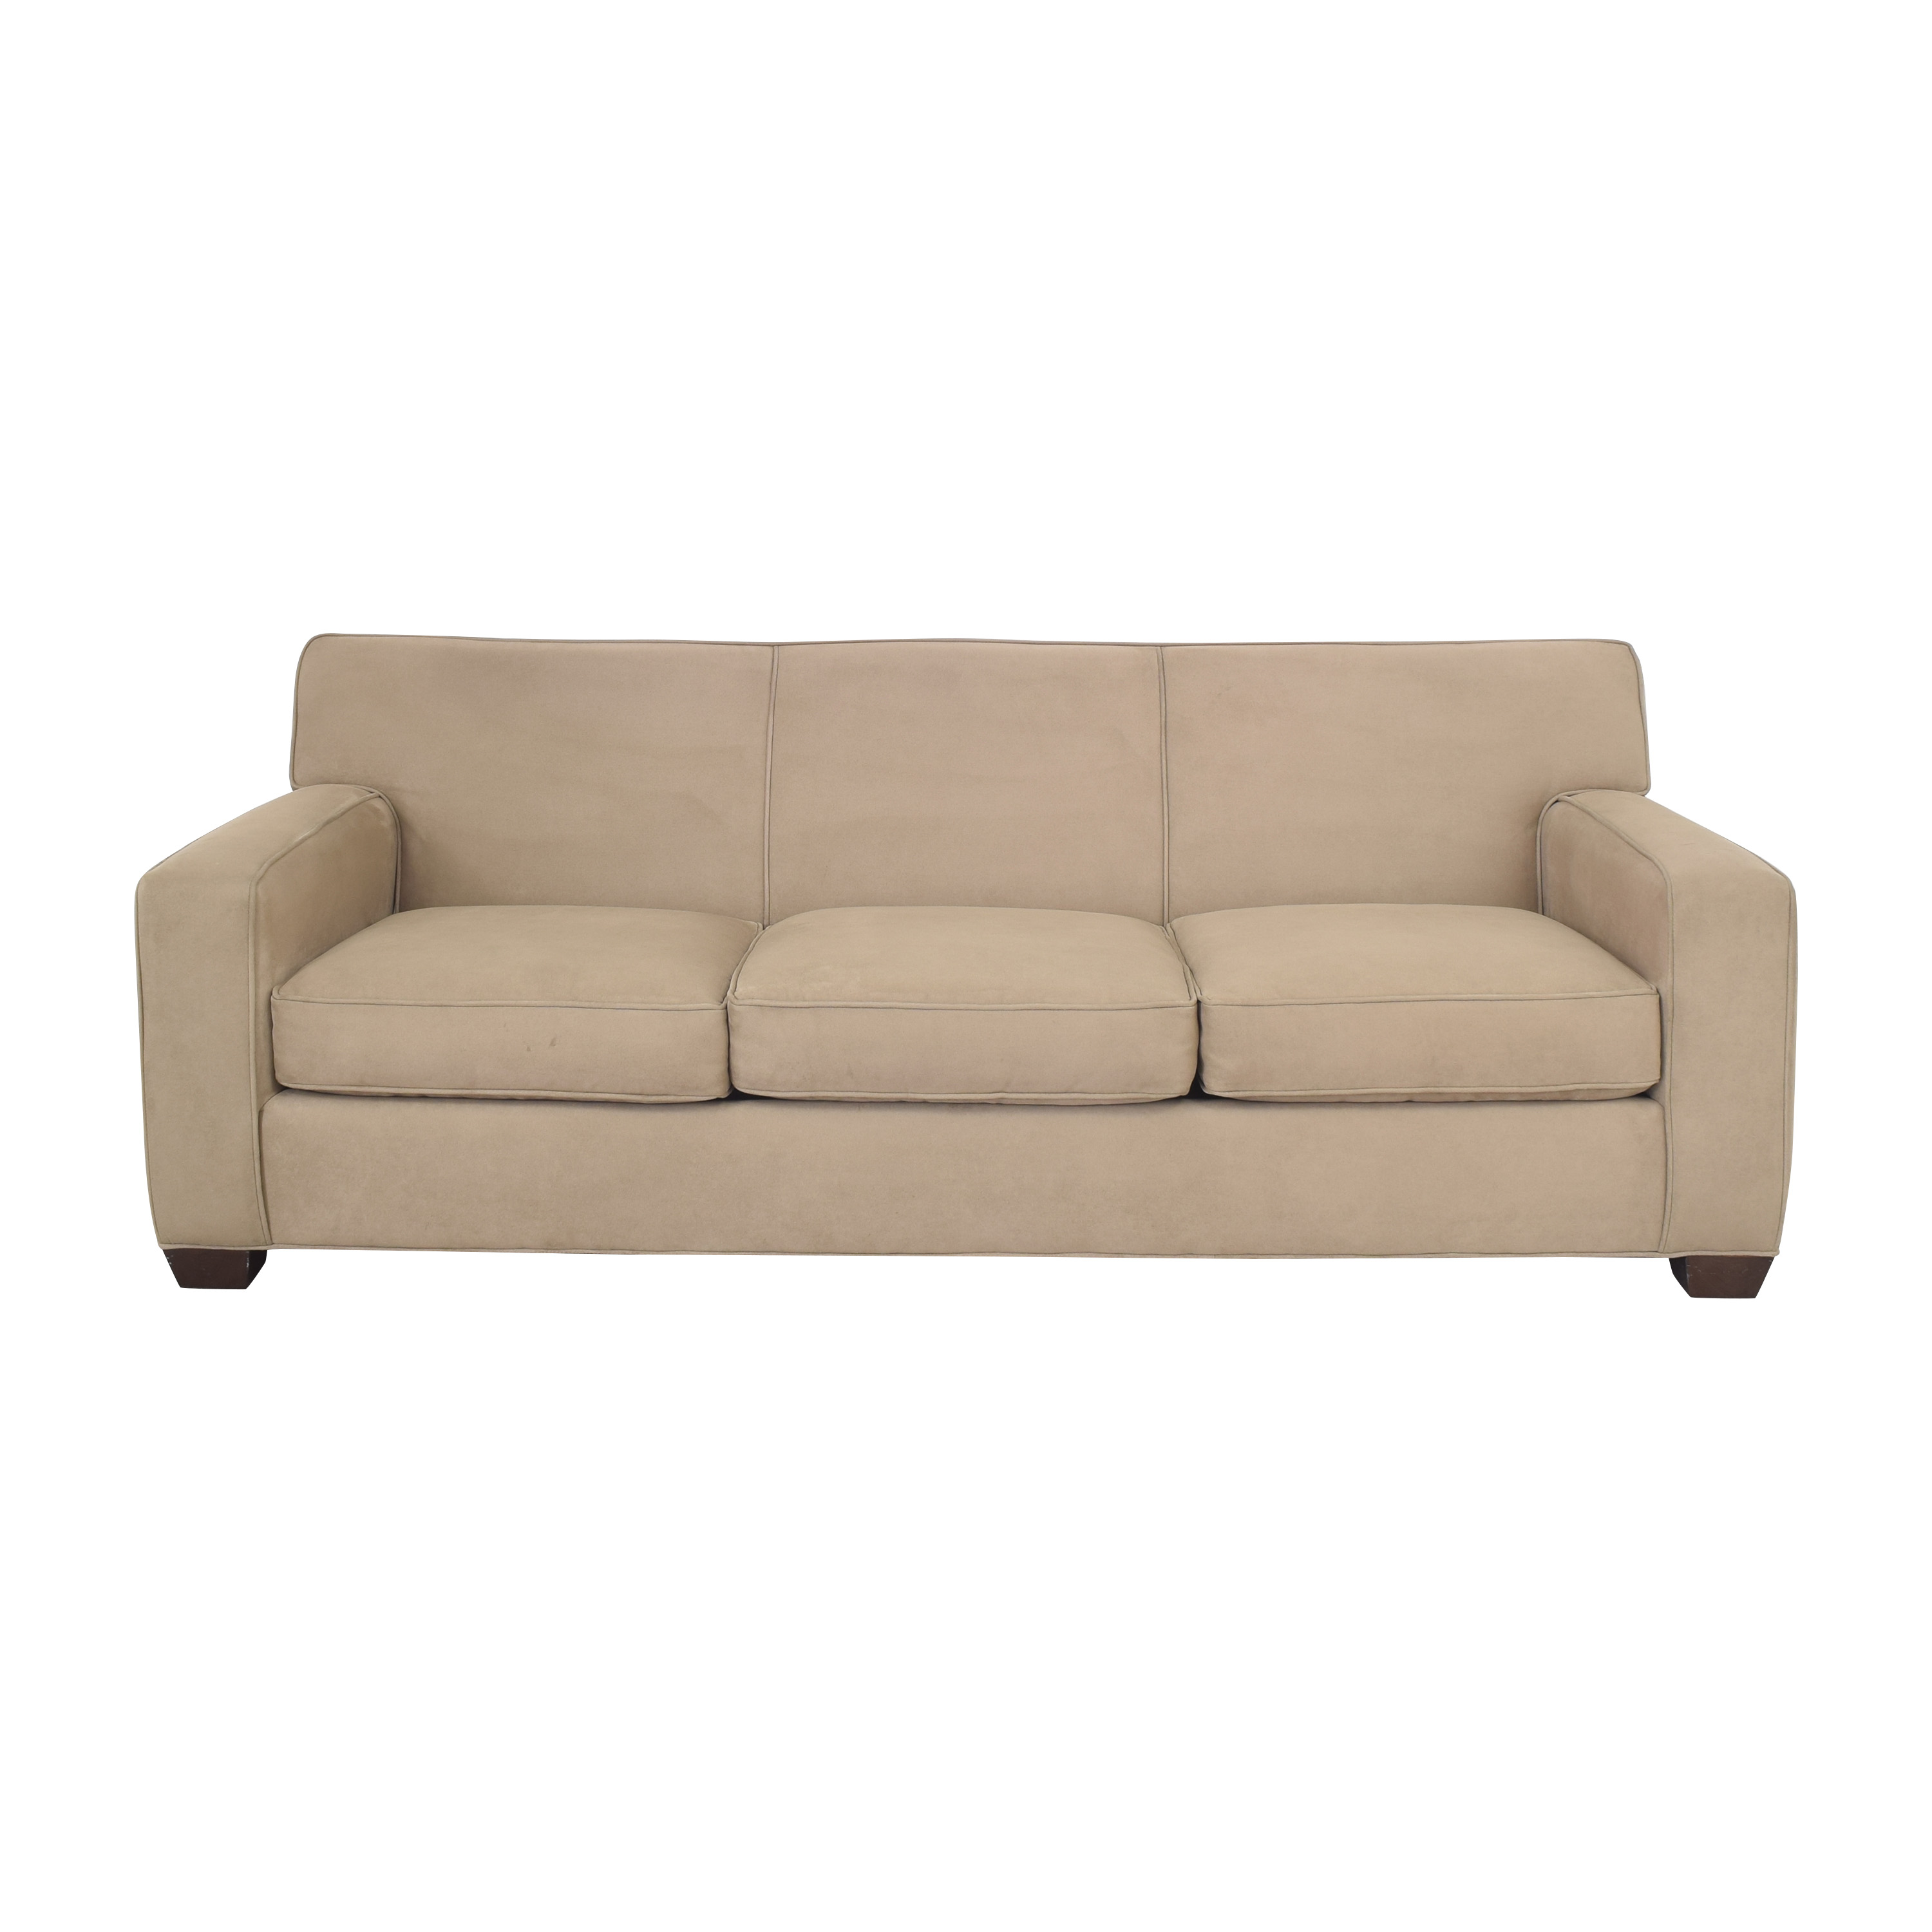 Crate & Barrel Crate & Barrel Axis II Three Seat Sofa Classic Sofas